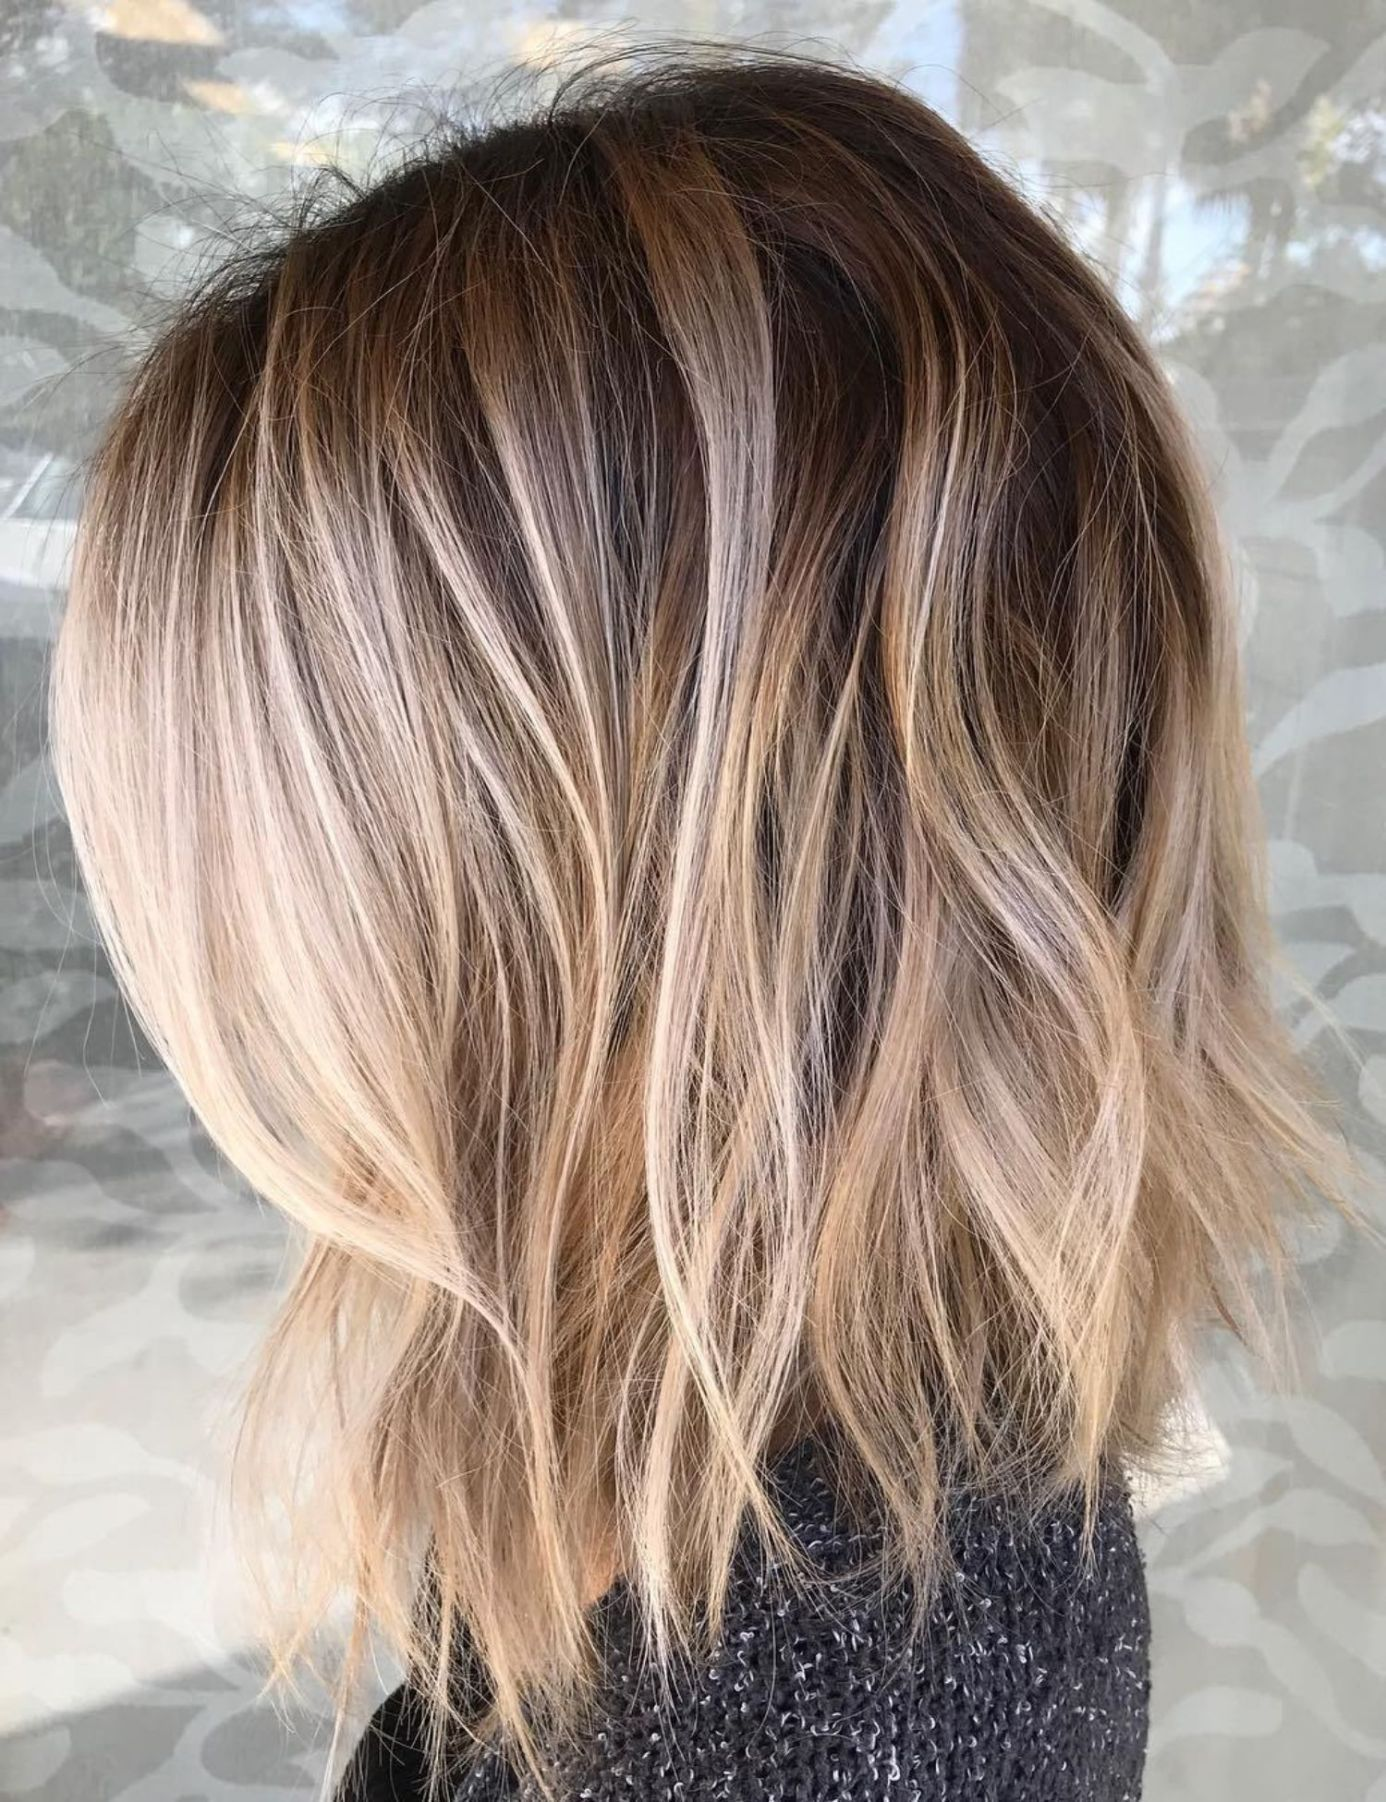 12 Devastatingly Cool Haircuts for Thin Hair, #Cool #Devastatingly